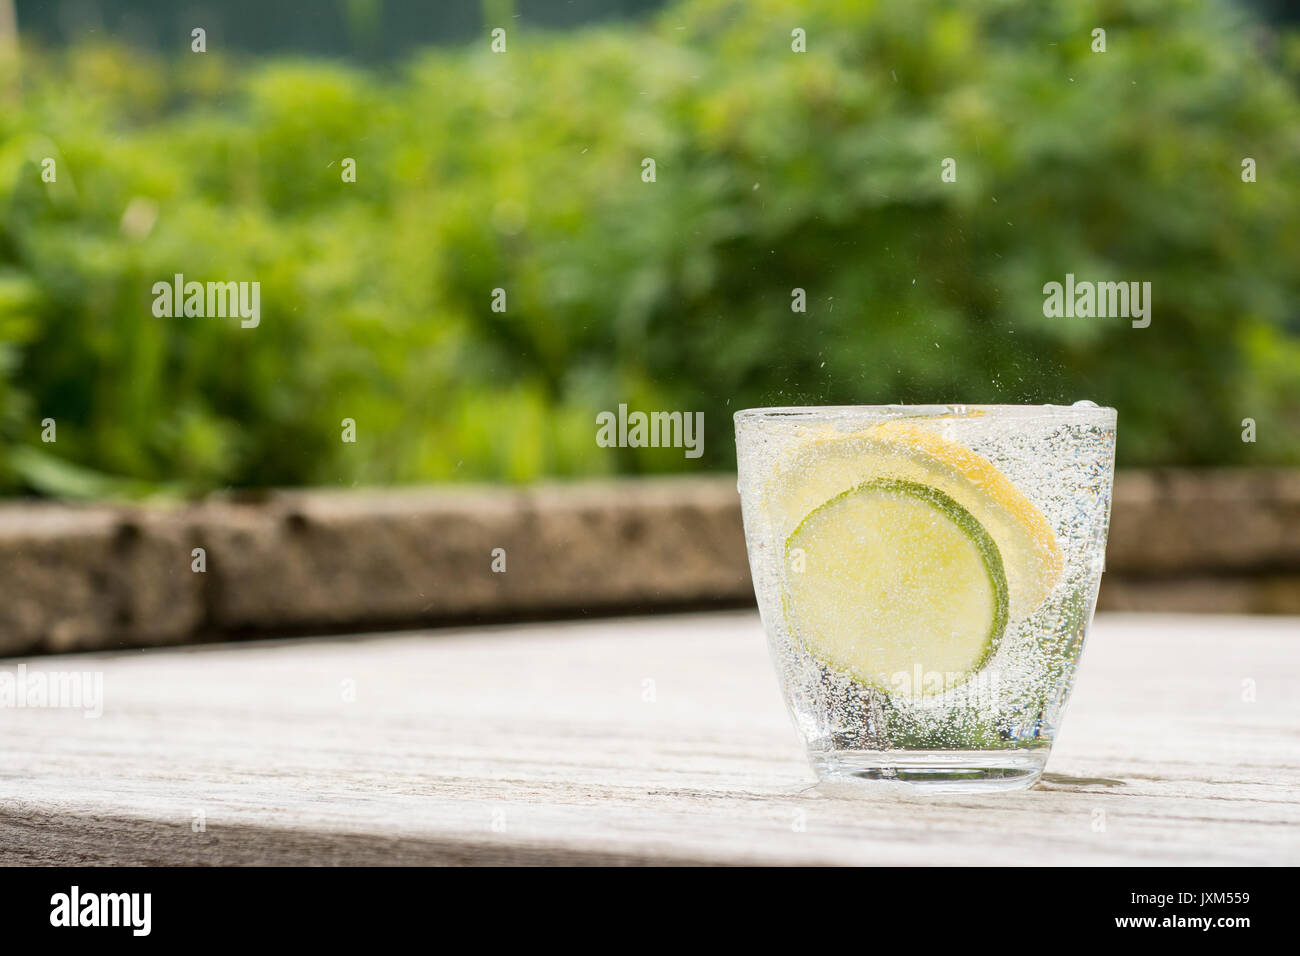 Glass of gin and tonic or vodka and tonic or fizzy water on a wooden table. Refreshing - Stock Image